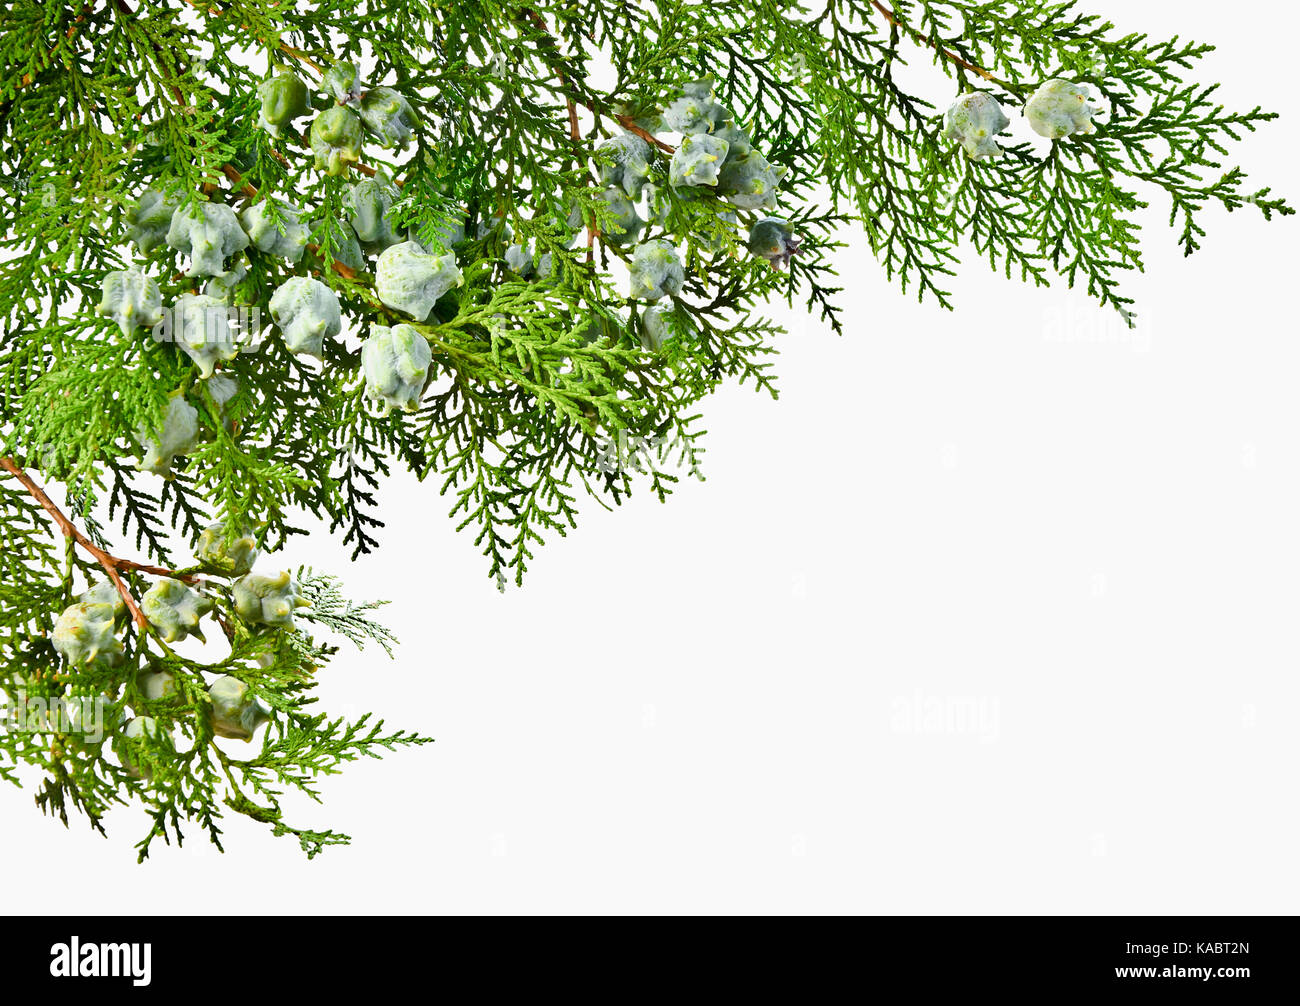 Thuja twig with fruit on a white background. Green Thuja twig with unripe fruit. - Stock Image